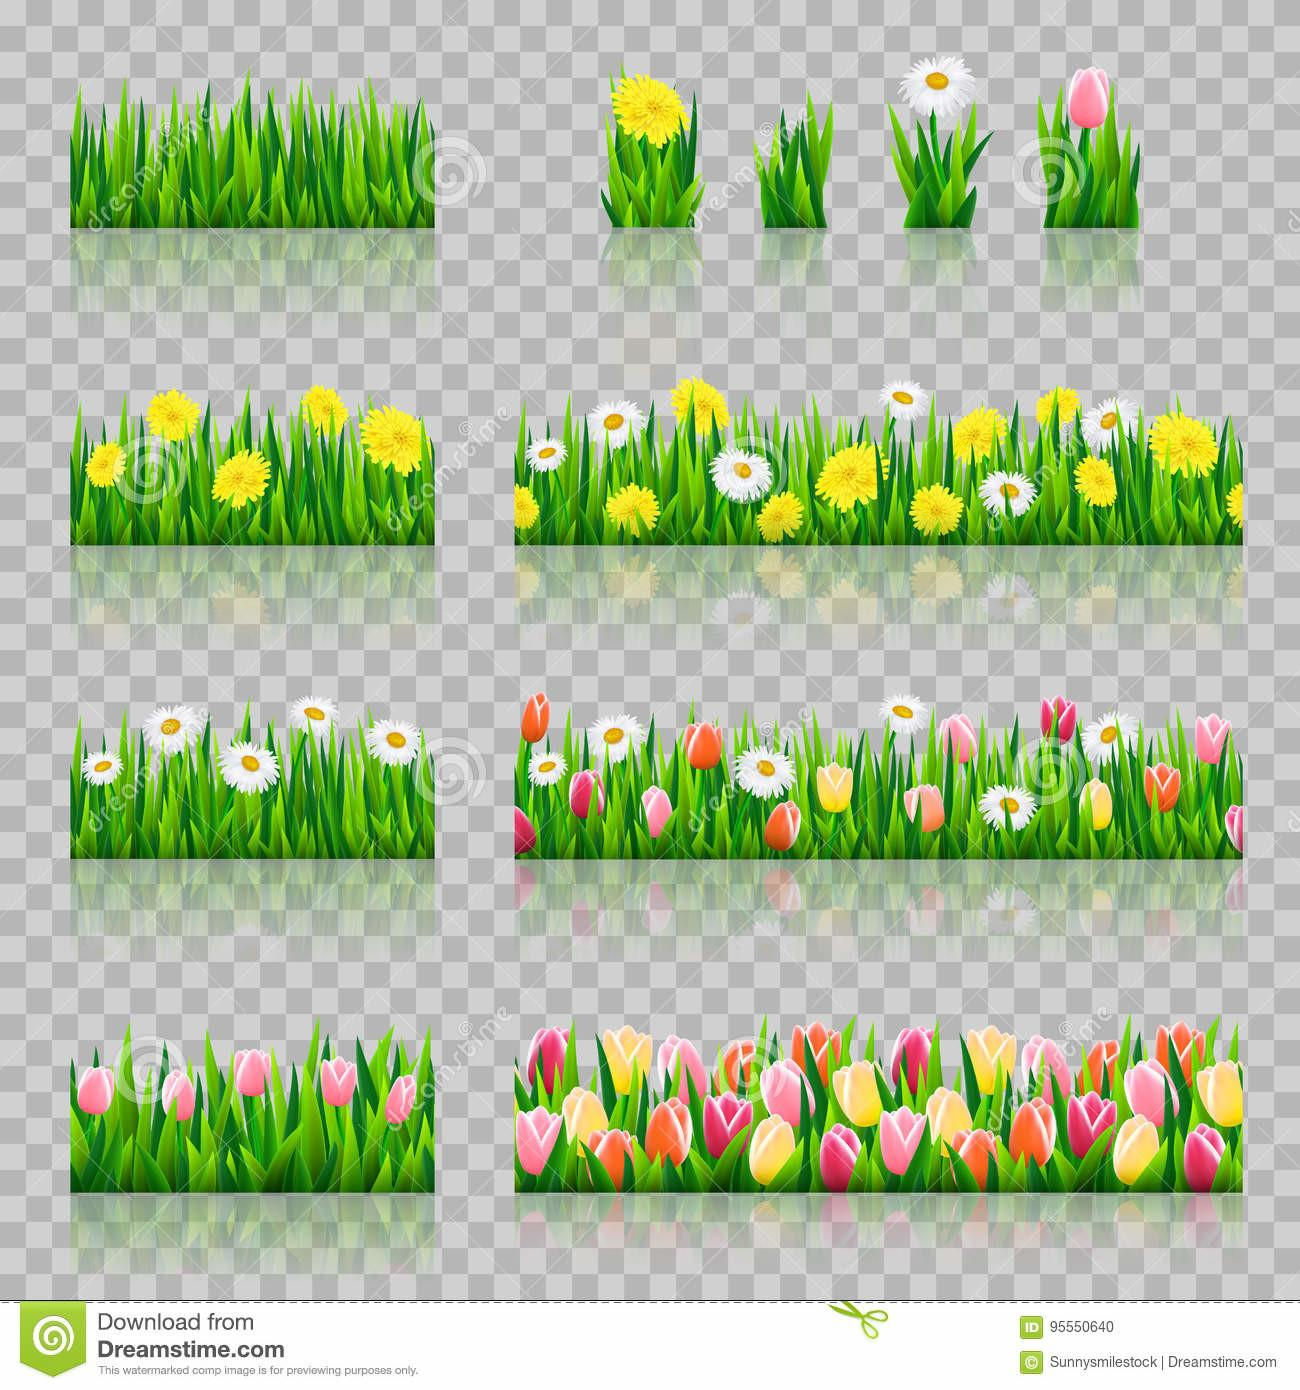 Seamless Grass Border Stock Vector